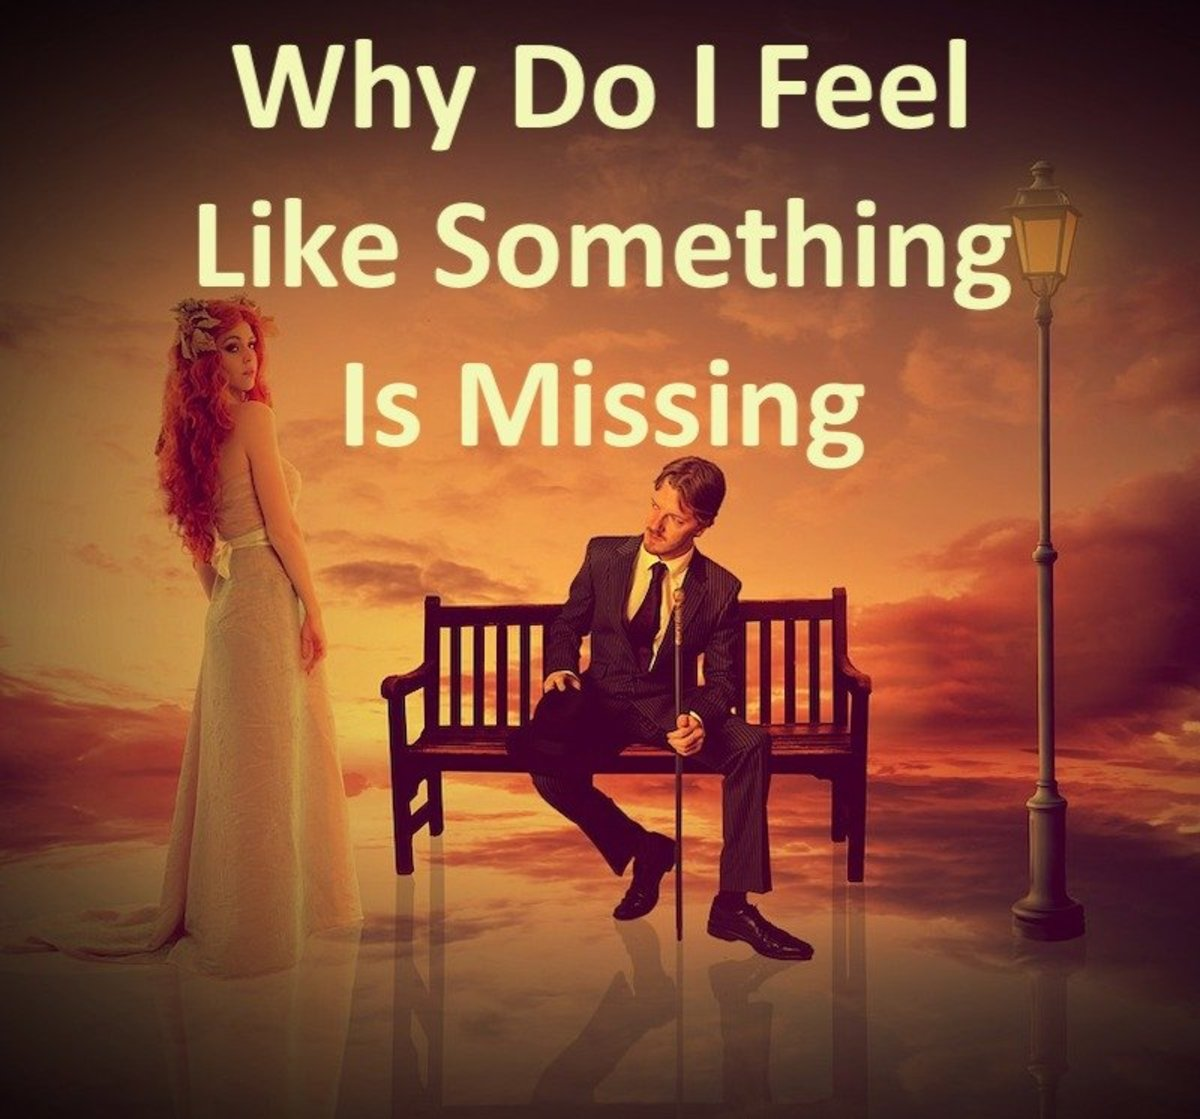 Why Do I Feel Like Something Is Missing in My Relationship?